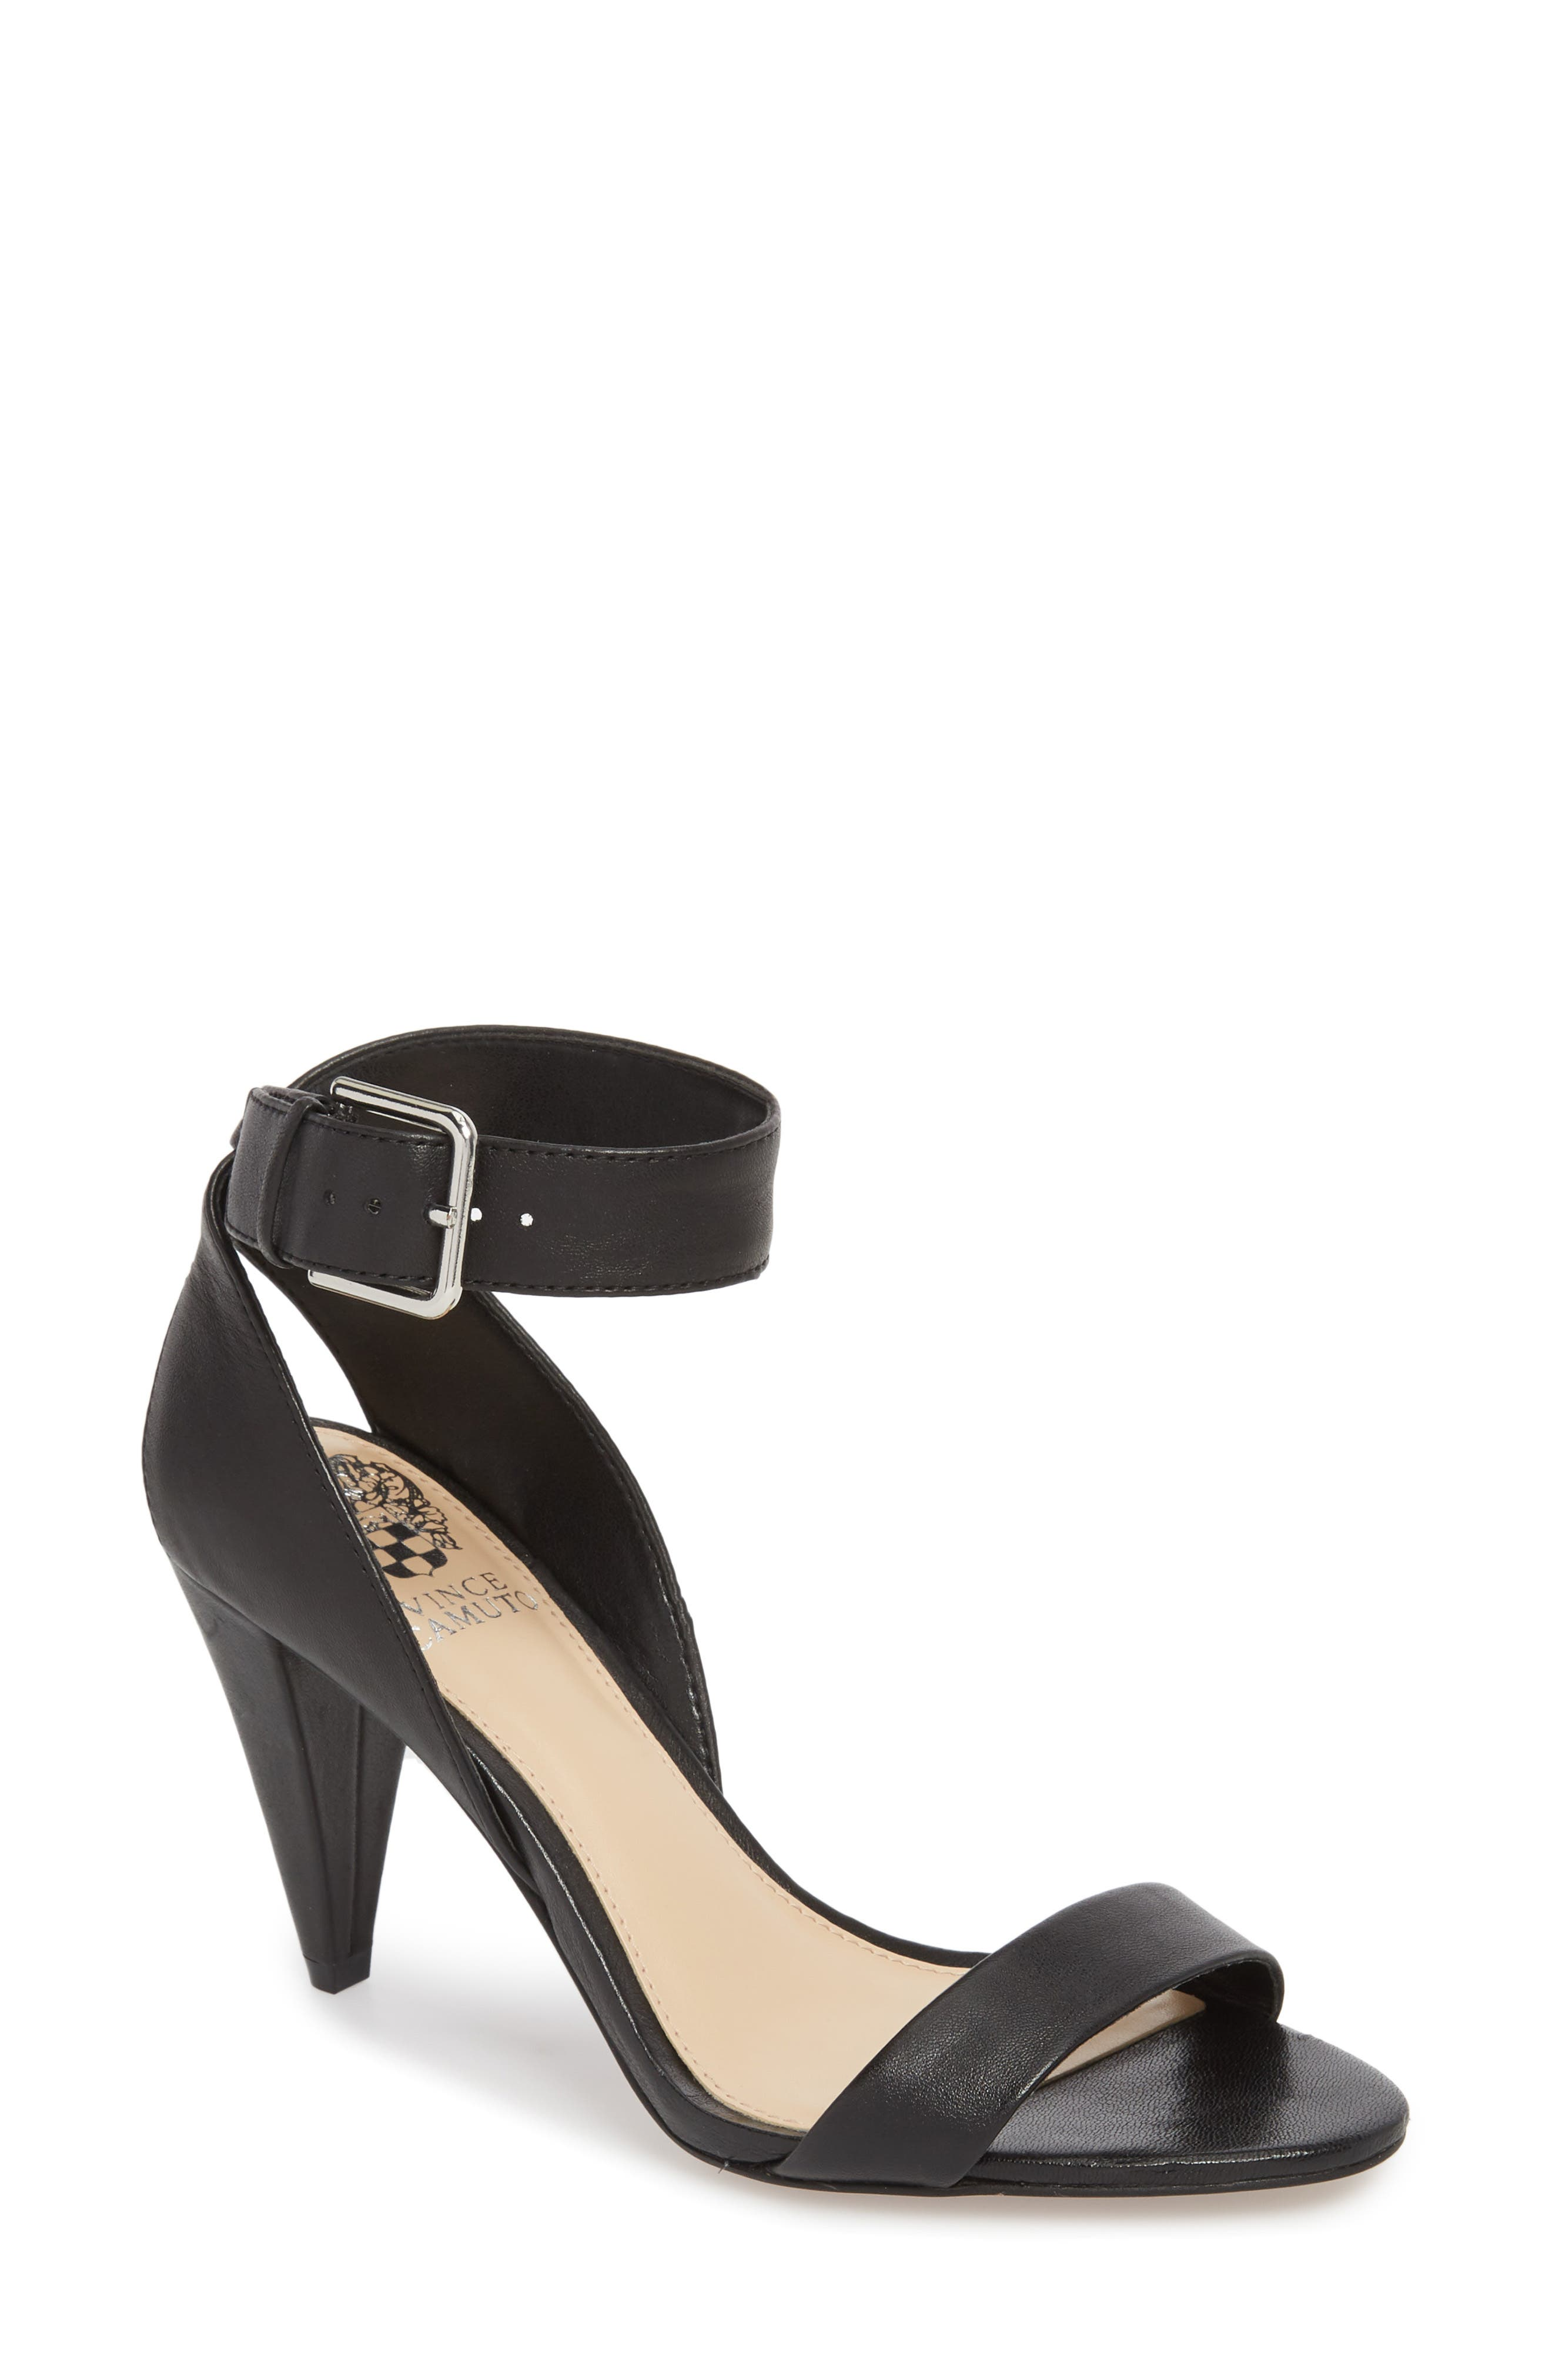 Caitriona Sandal,                         Main,                         color, BLACK LEATHER